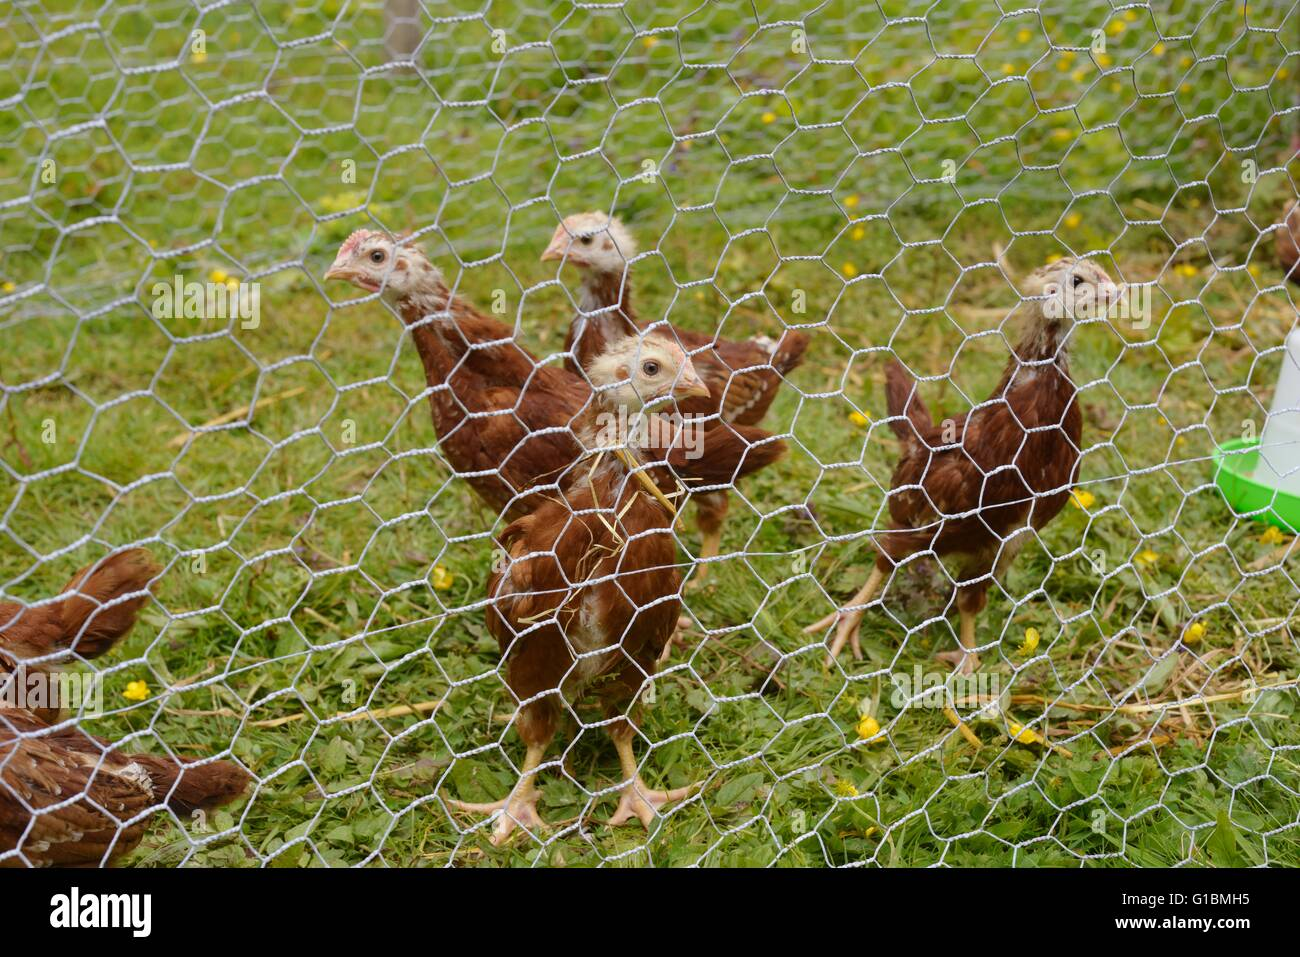 Young, pure breed Rhode Island Red chickens - Stock Image